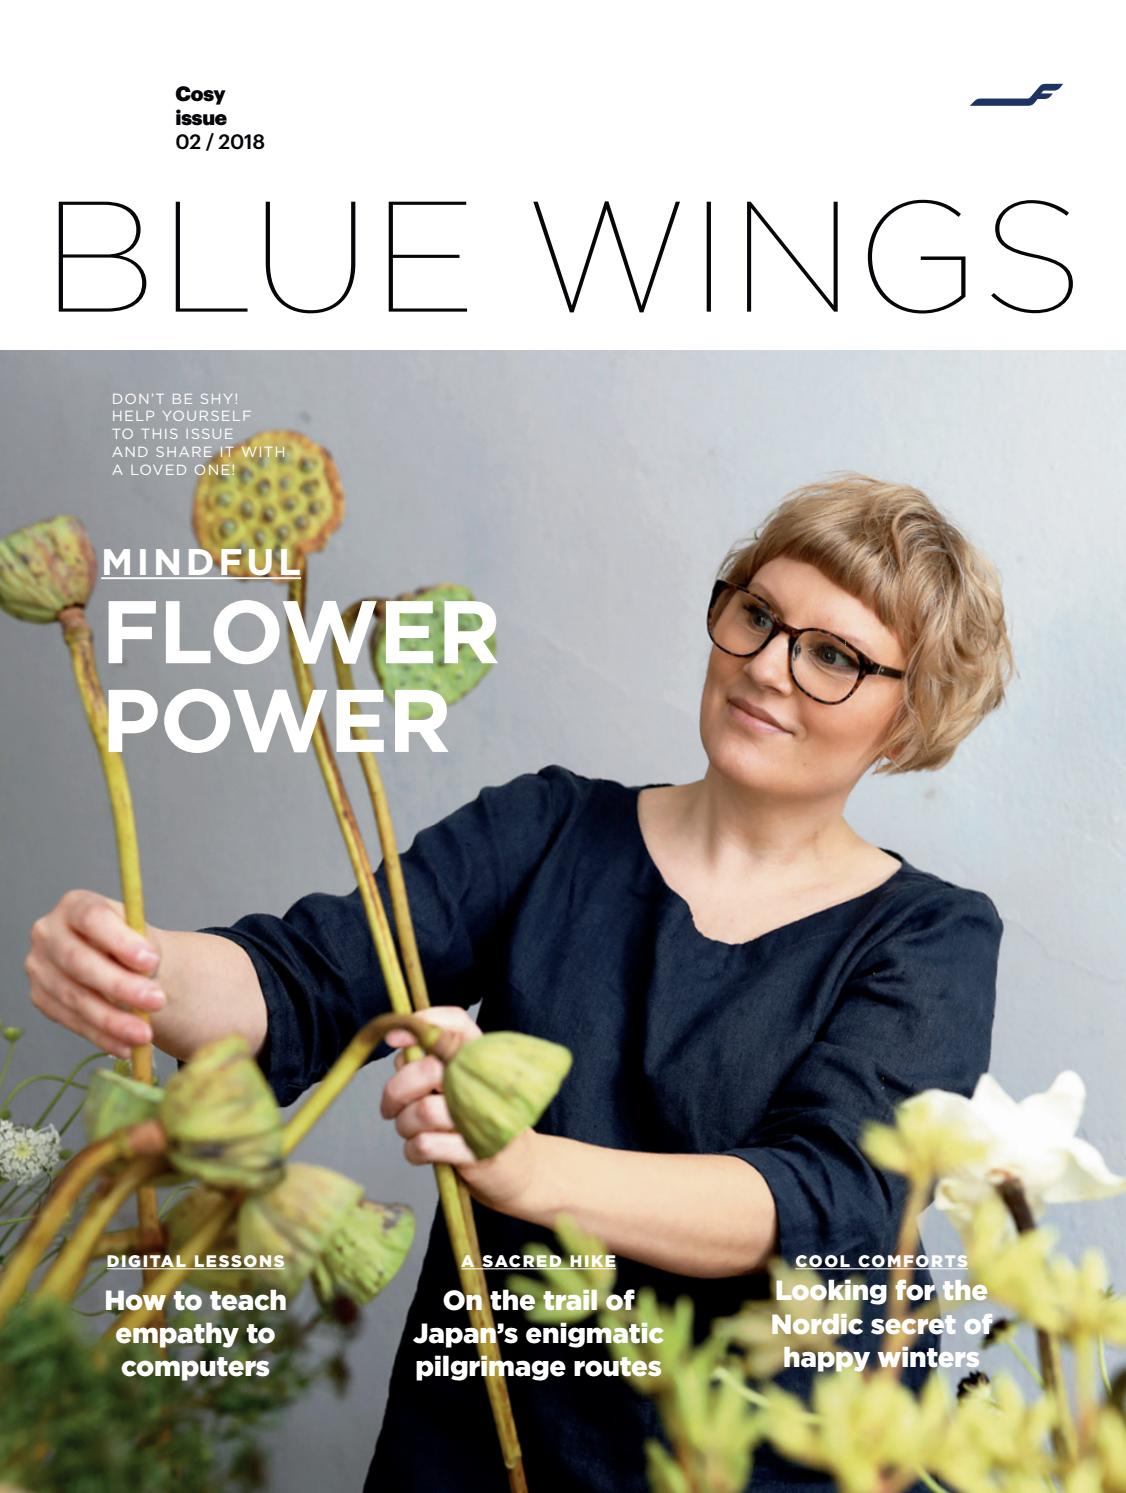 blue wings cosy issue february 2018 by finnair_bluewings - issuu